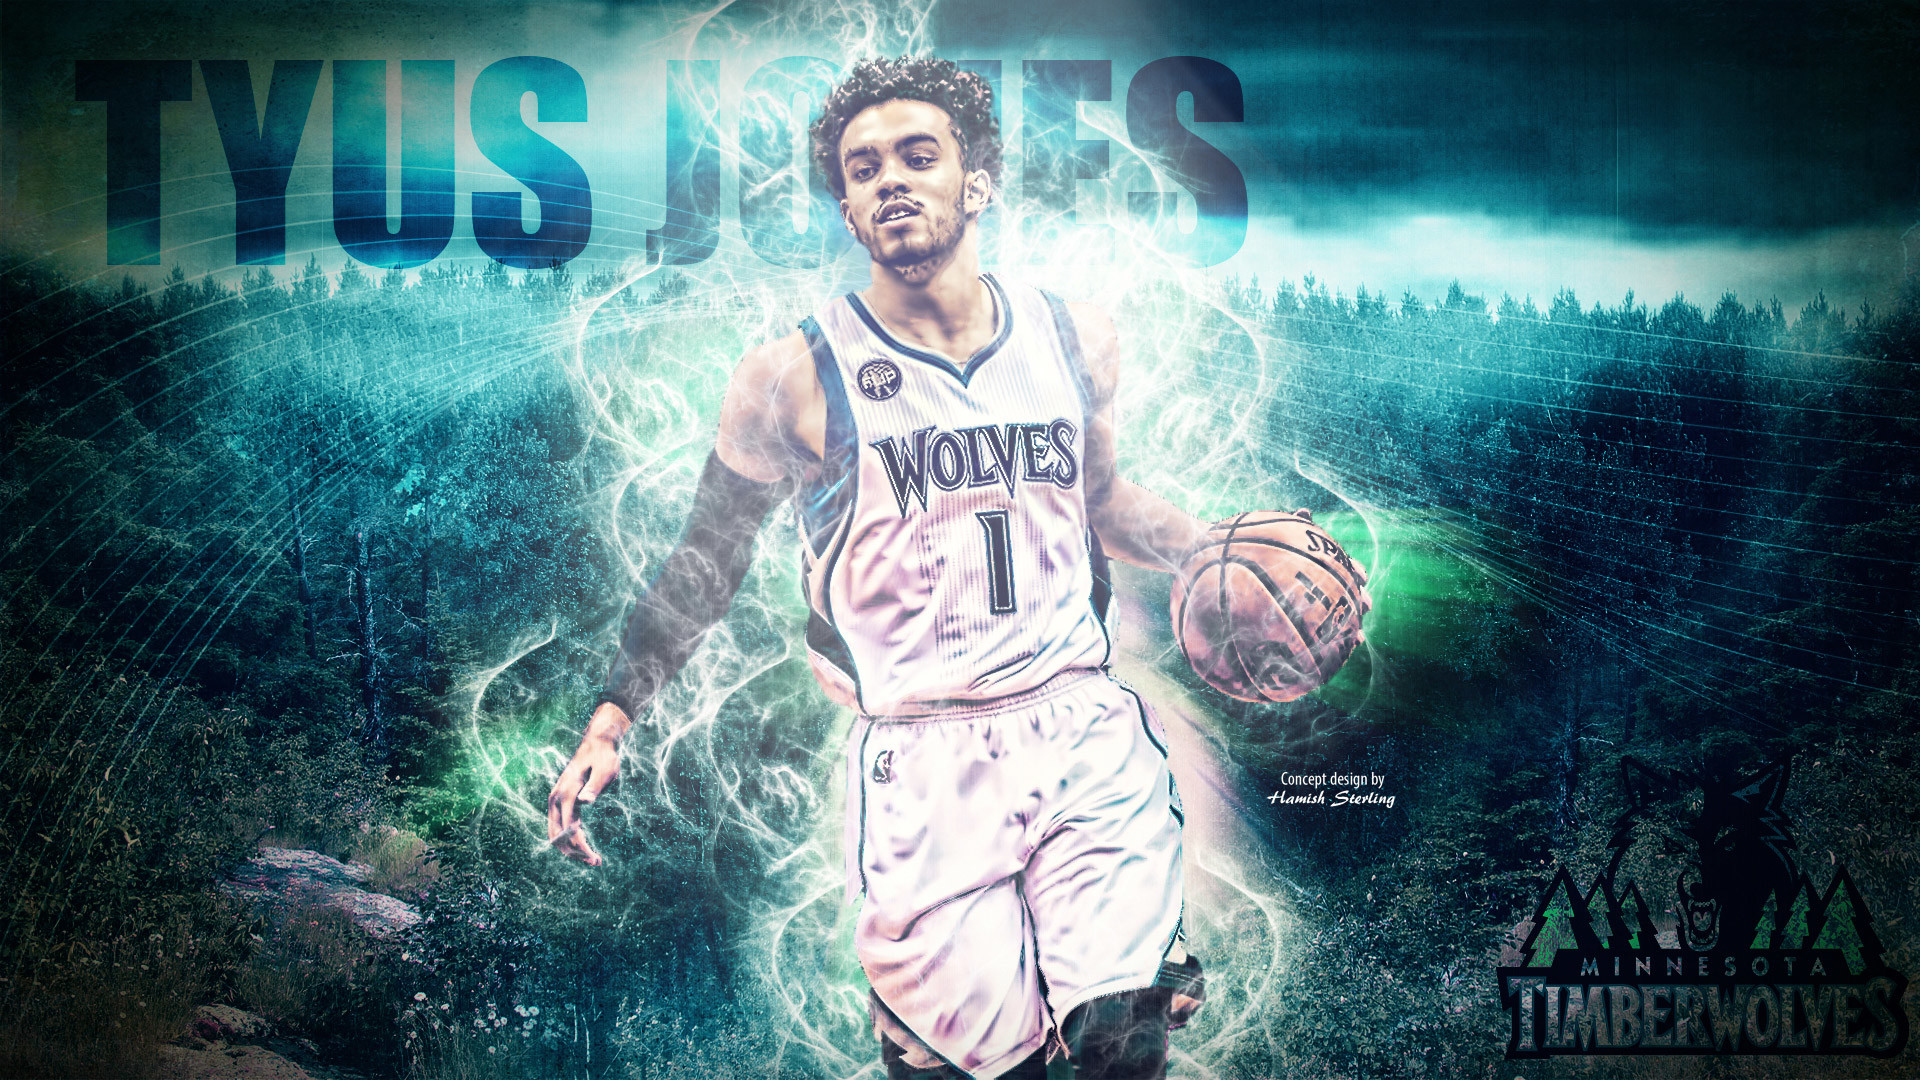 1920x1080 Tyus Jones Timberwolves 2016 Wallpaper